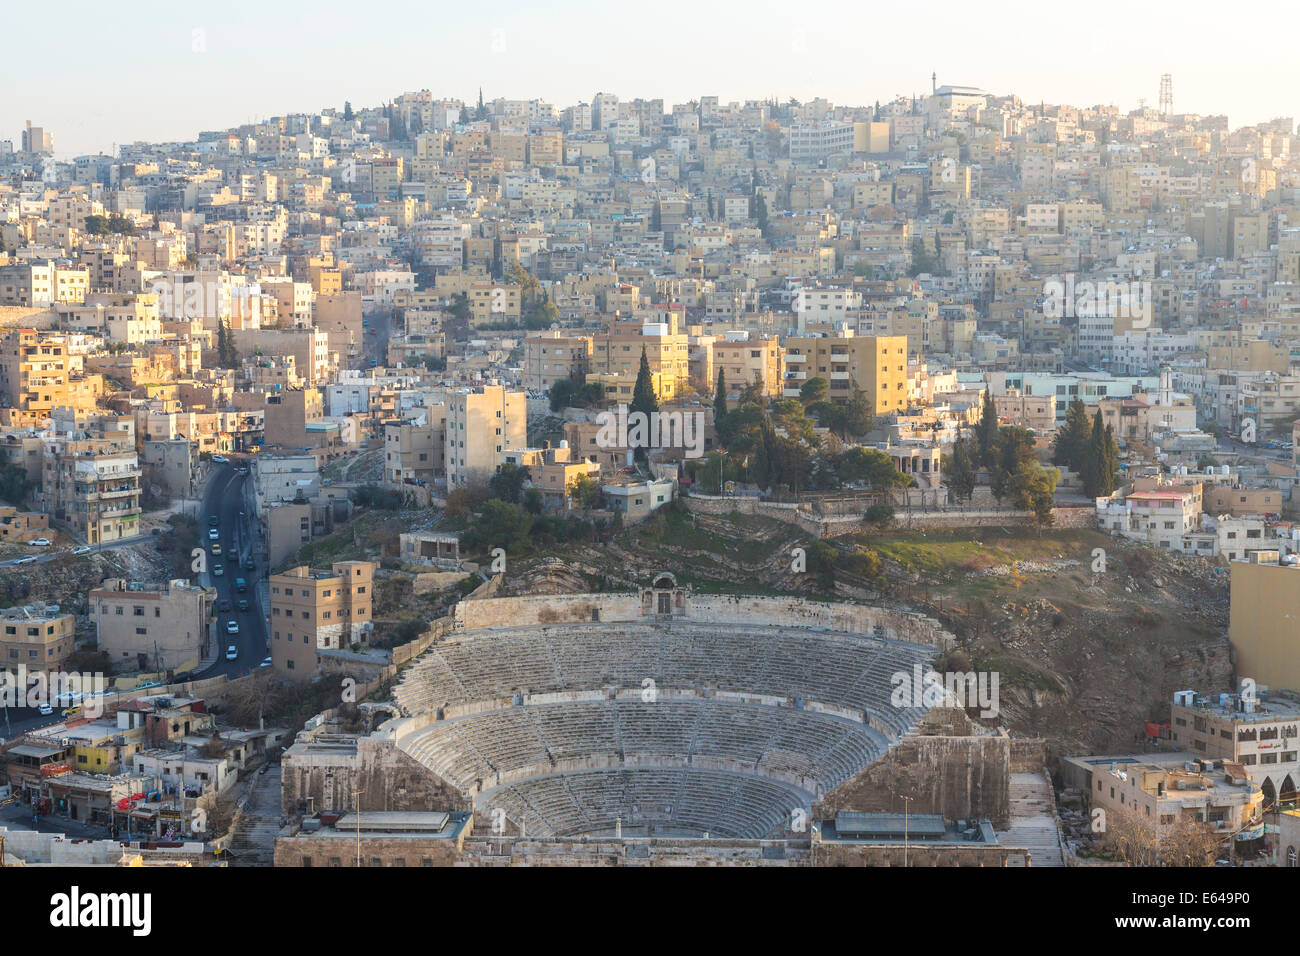 Amphithéâtre romain, & city, Amman, Jordanie Photo Stock